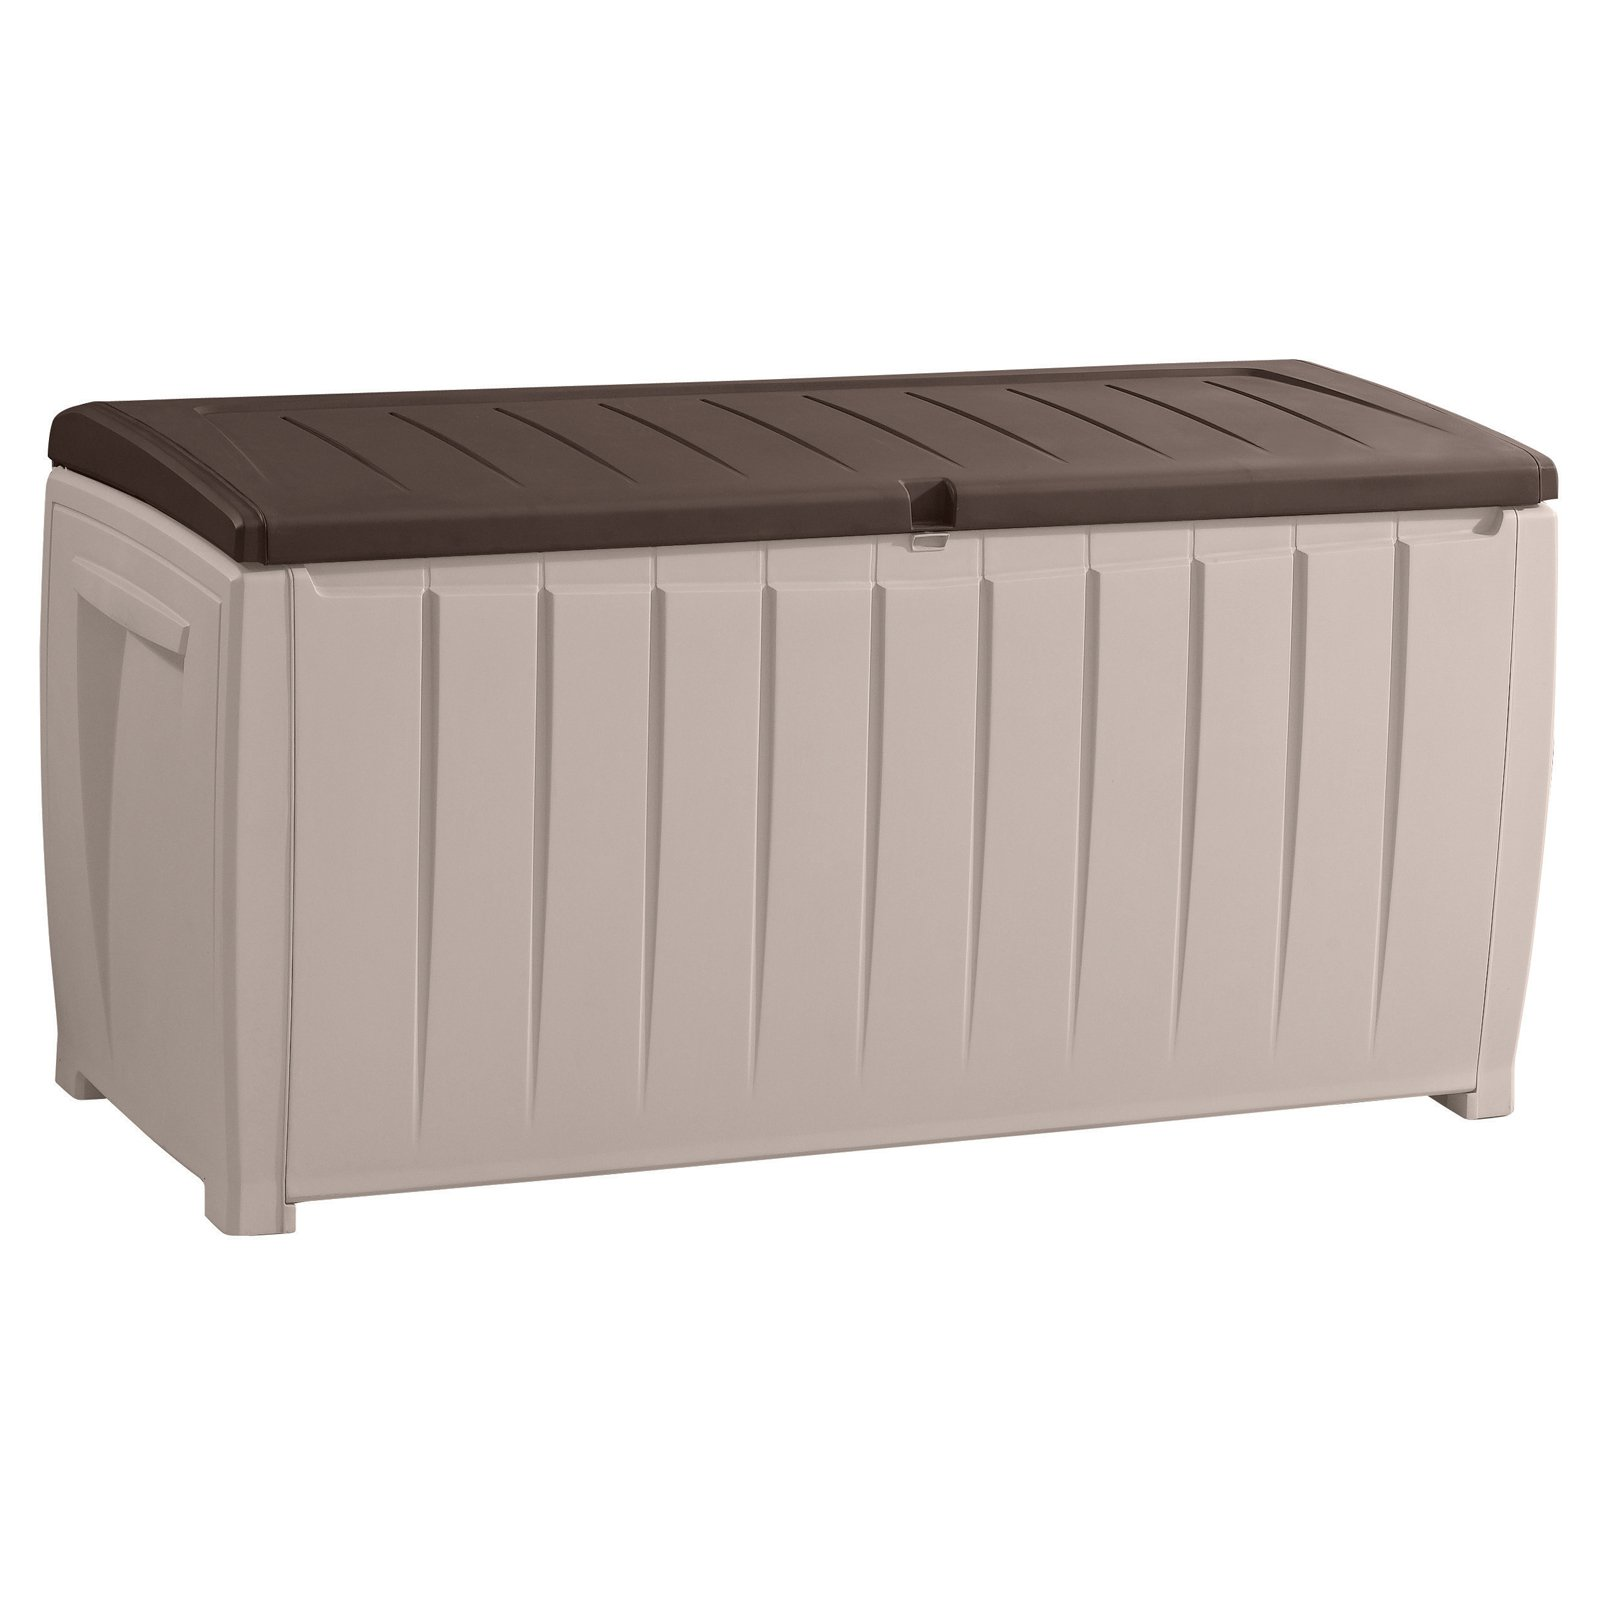 Keter Kissenbox Rockwood Keter Novel Outdoor Plastic Deck Box All Weather Resin Storage 90 Gal Black